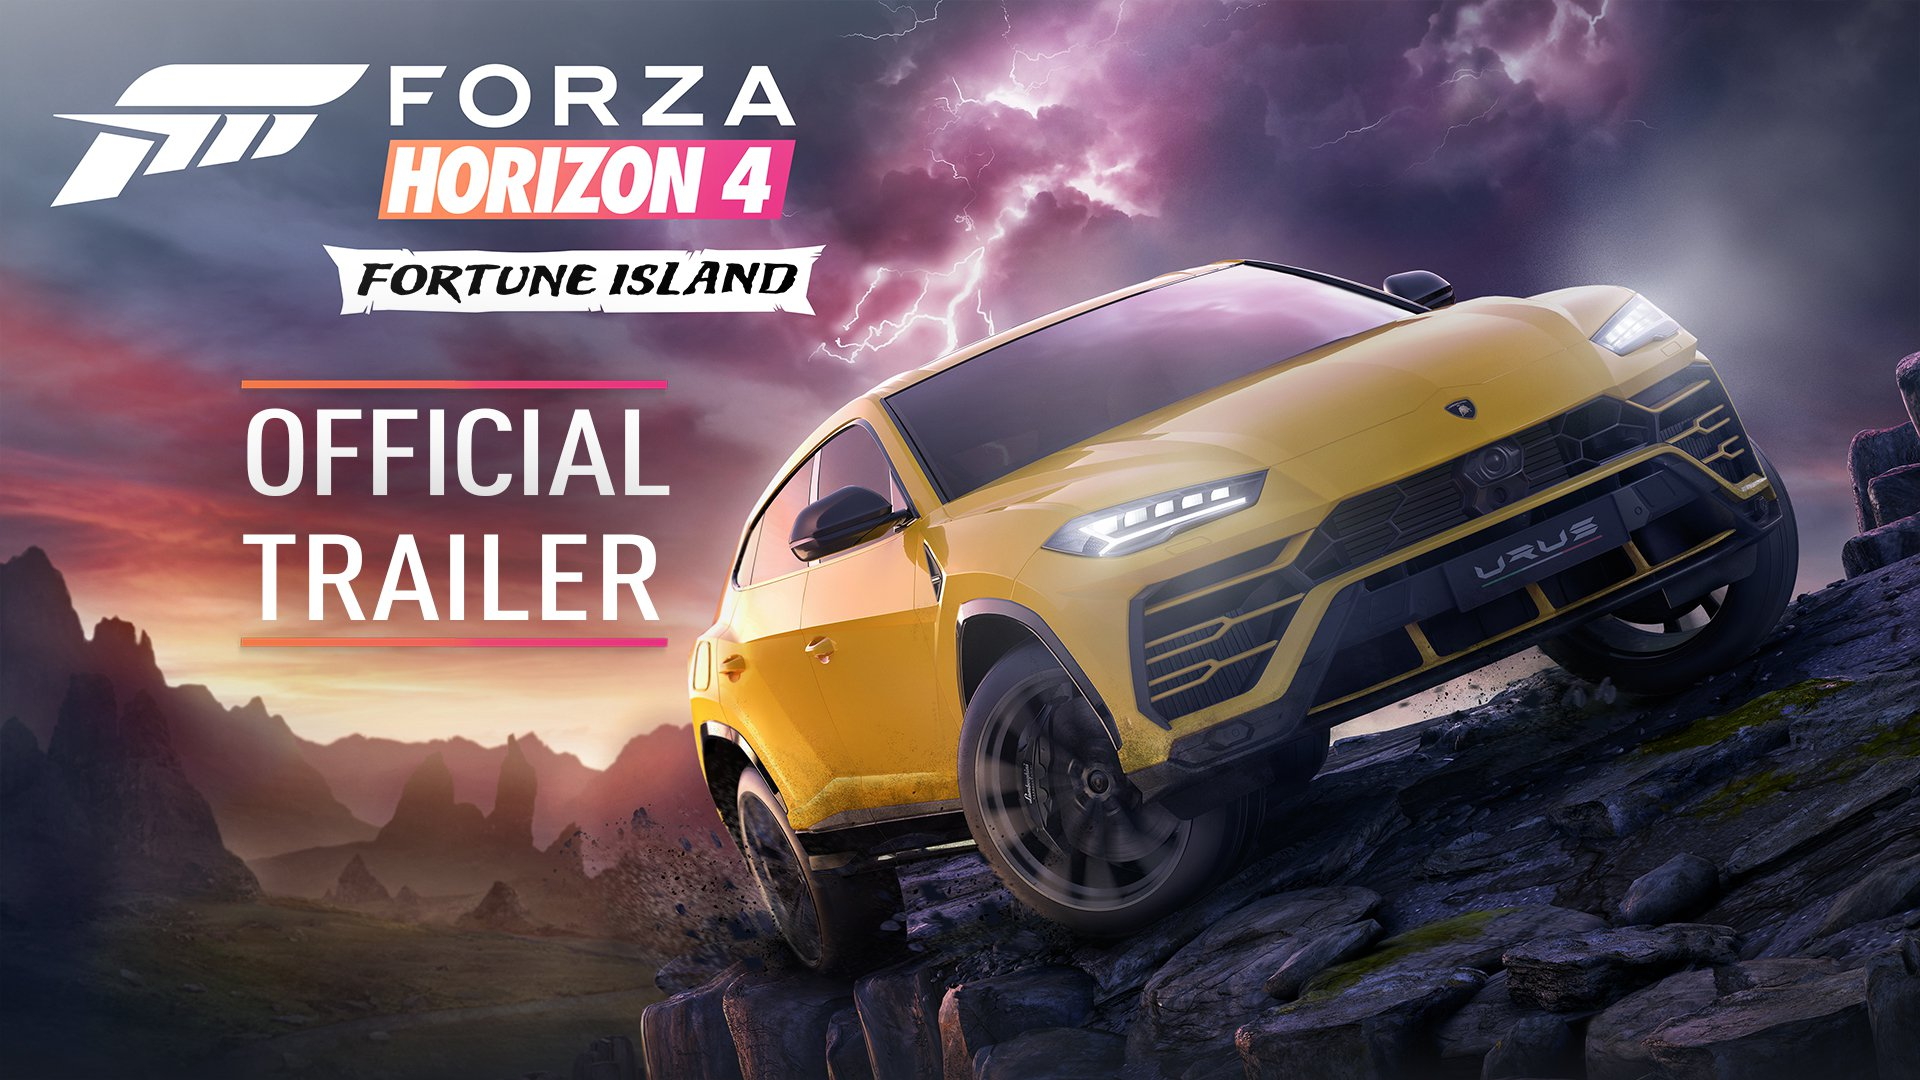 Forza Horizon 4: Ultimate Edition v1.465.282.0 Steam + All DLCs + Multiplayer